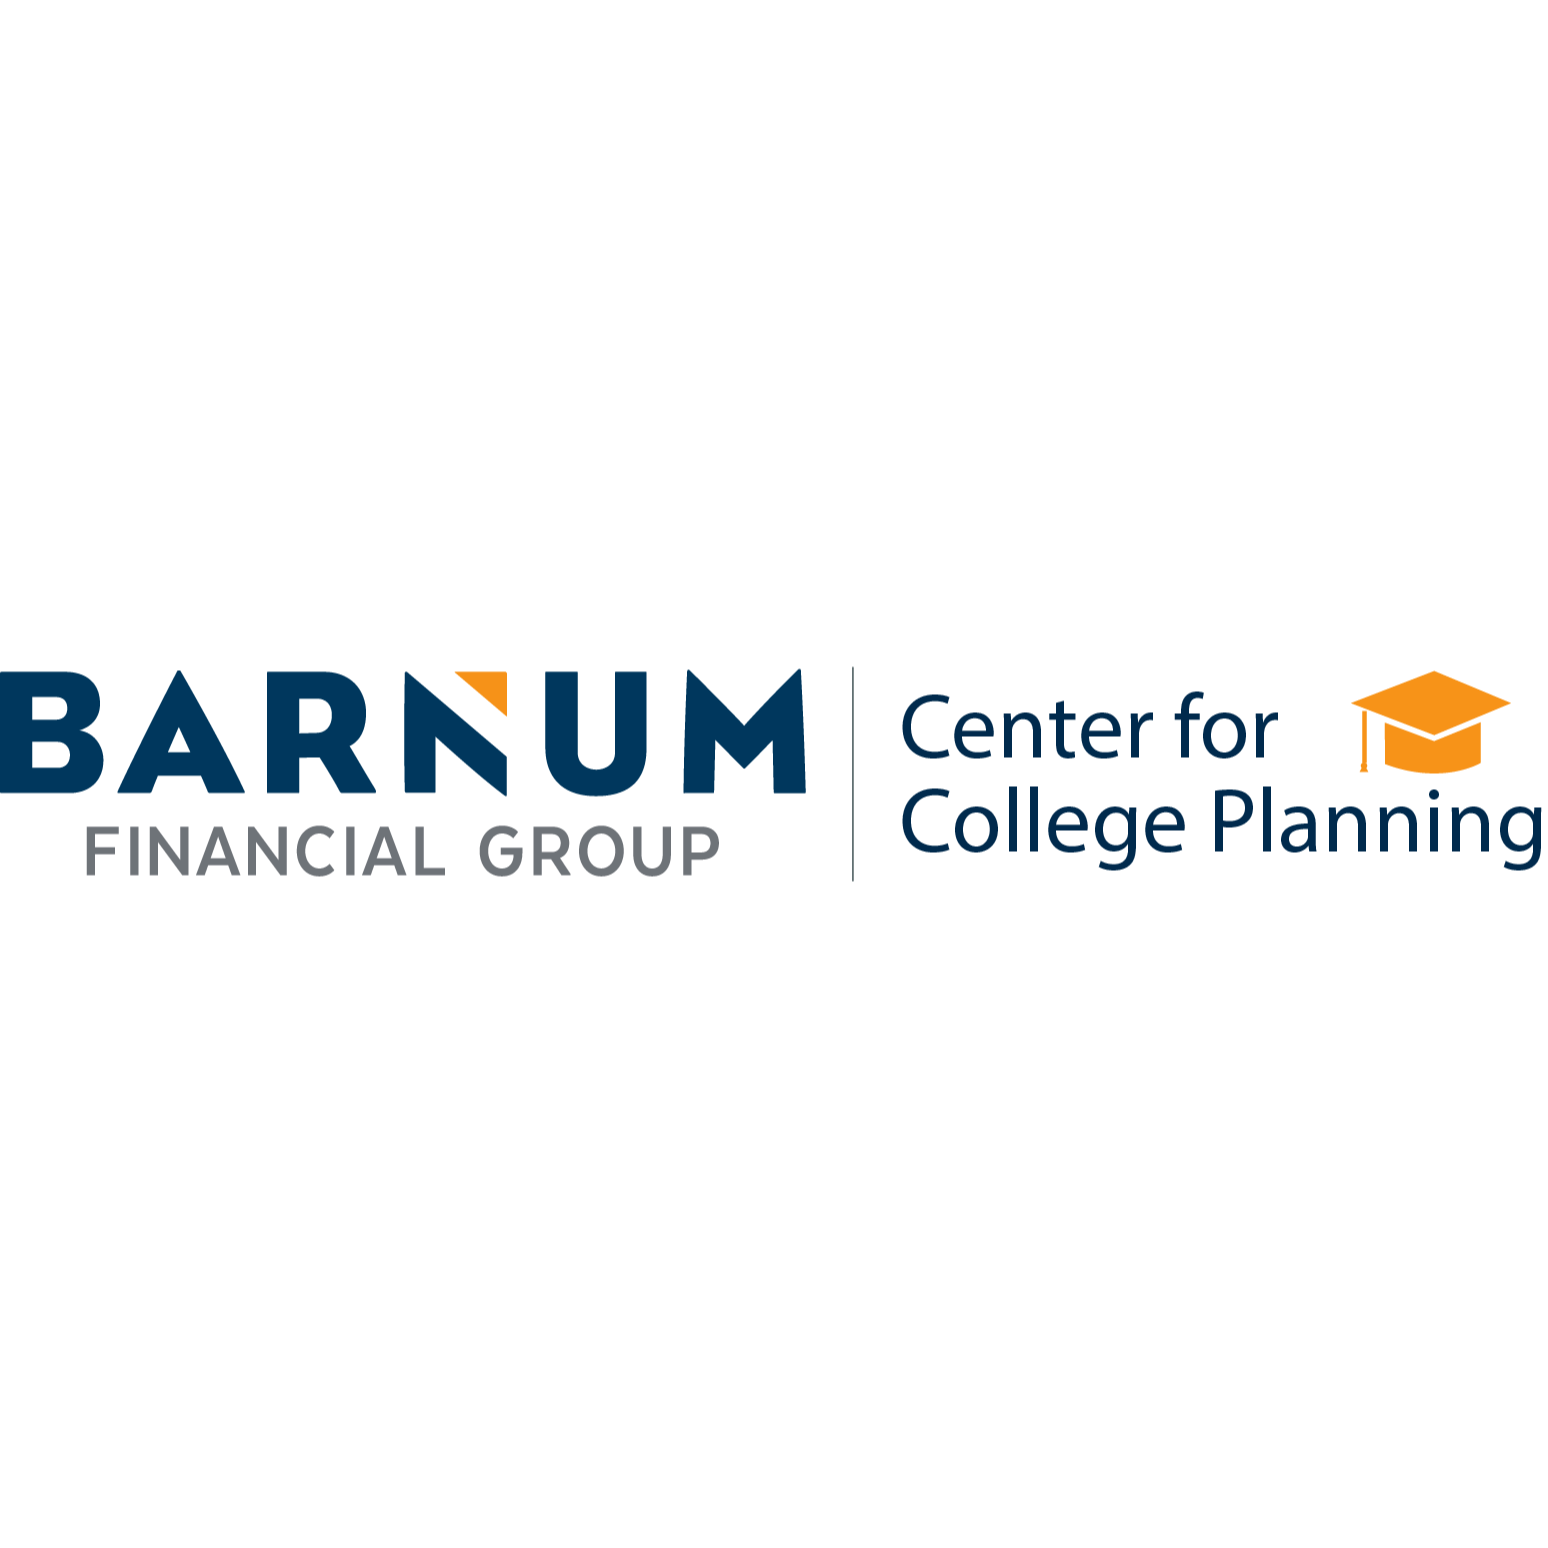 Barnum Financial Group's Center For College Planning